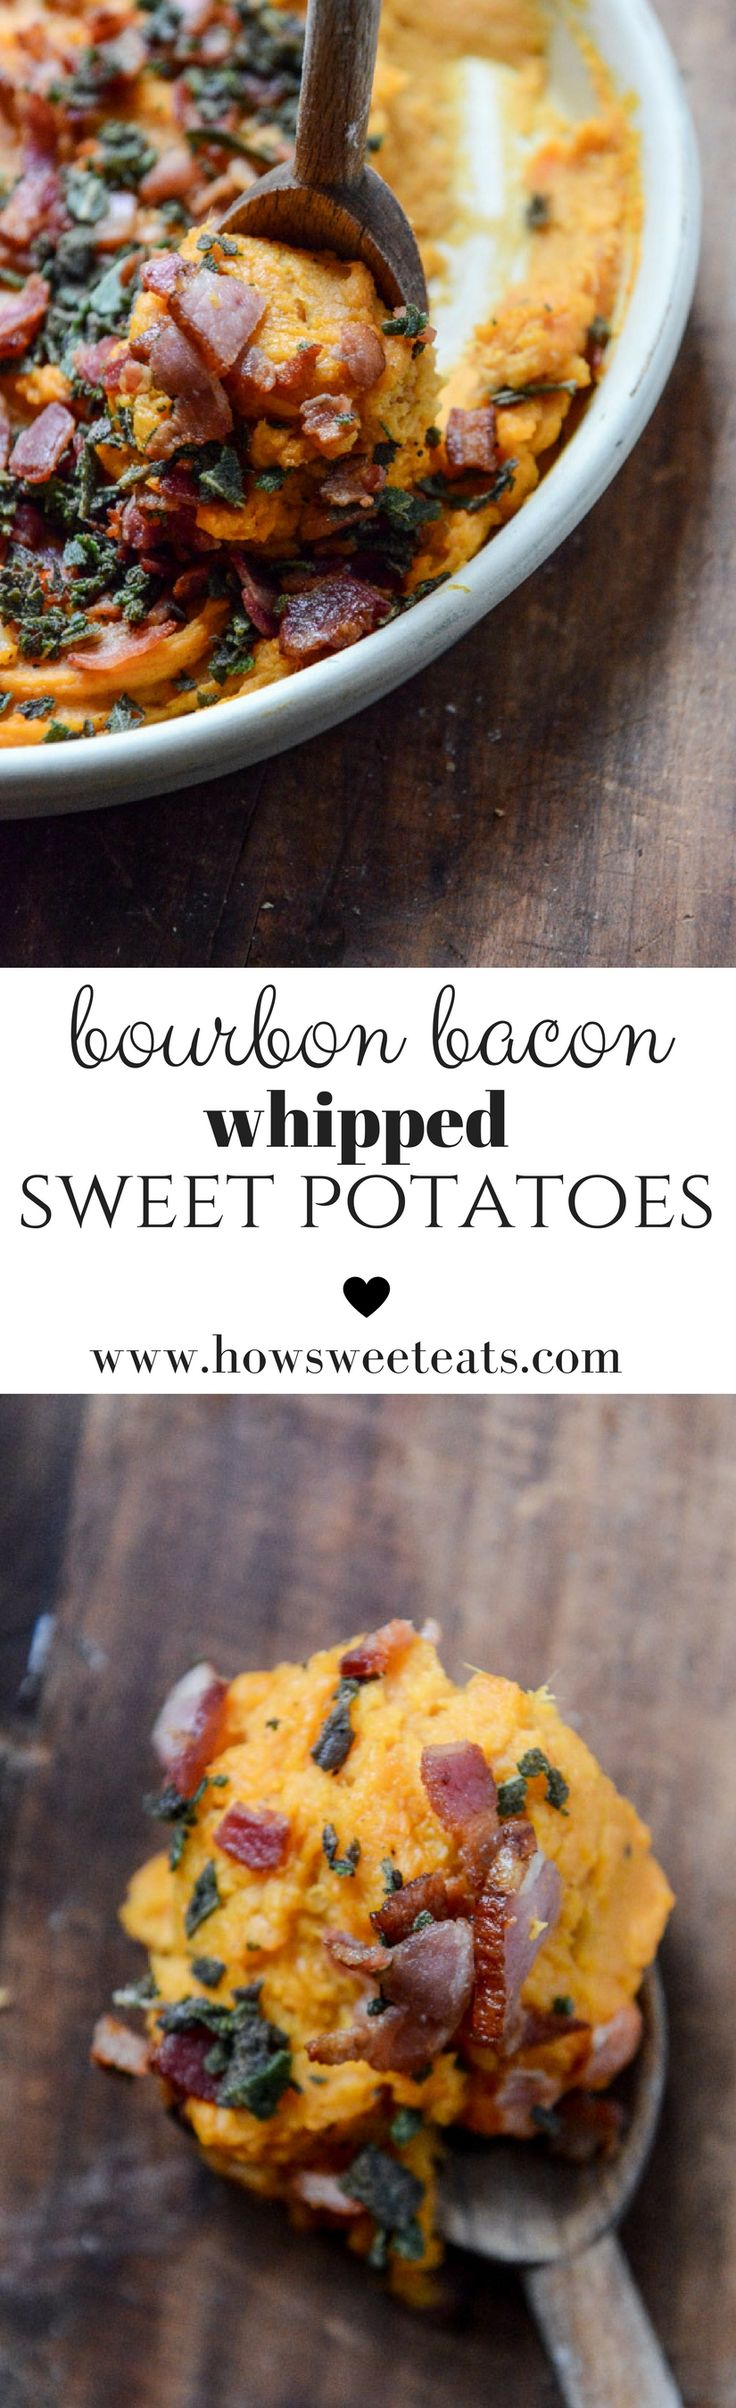 bourbon bacon whipped sweet potatoes I howsweeteats.com